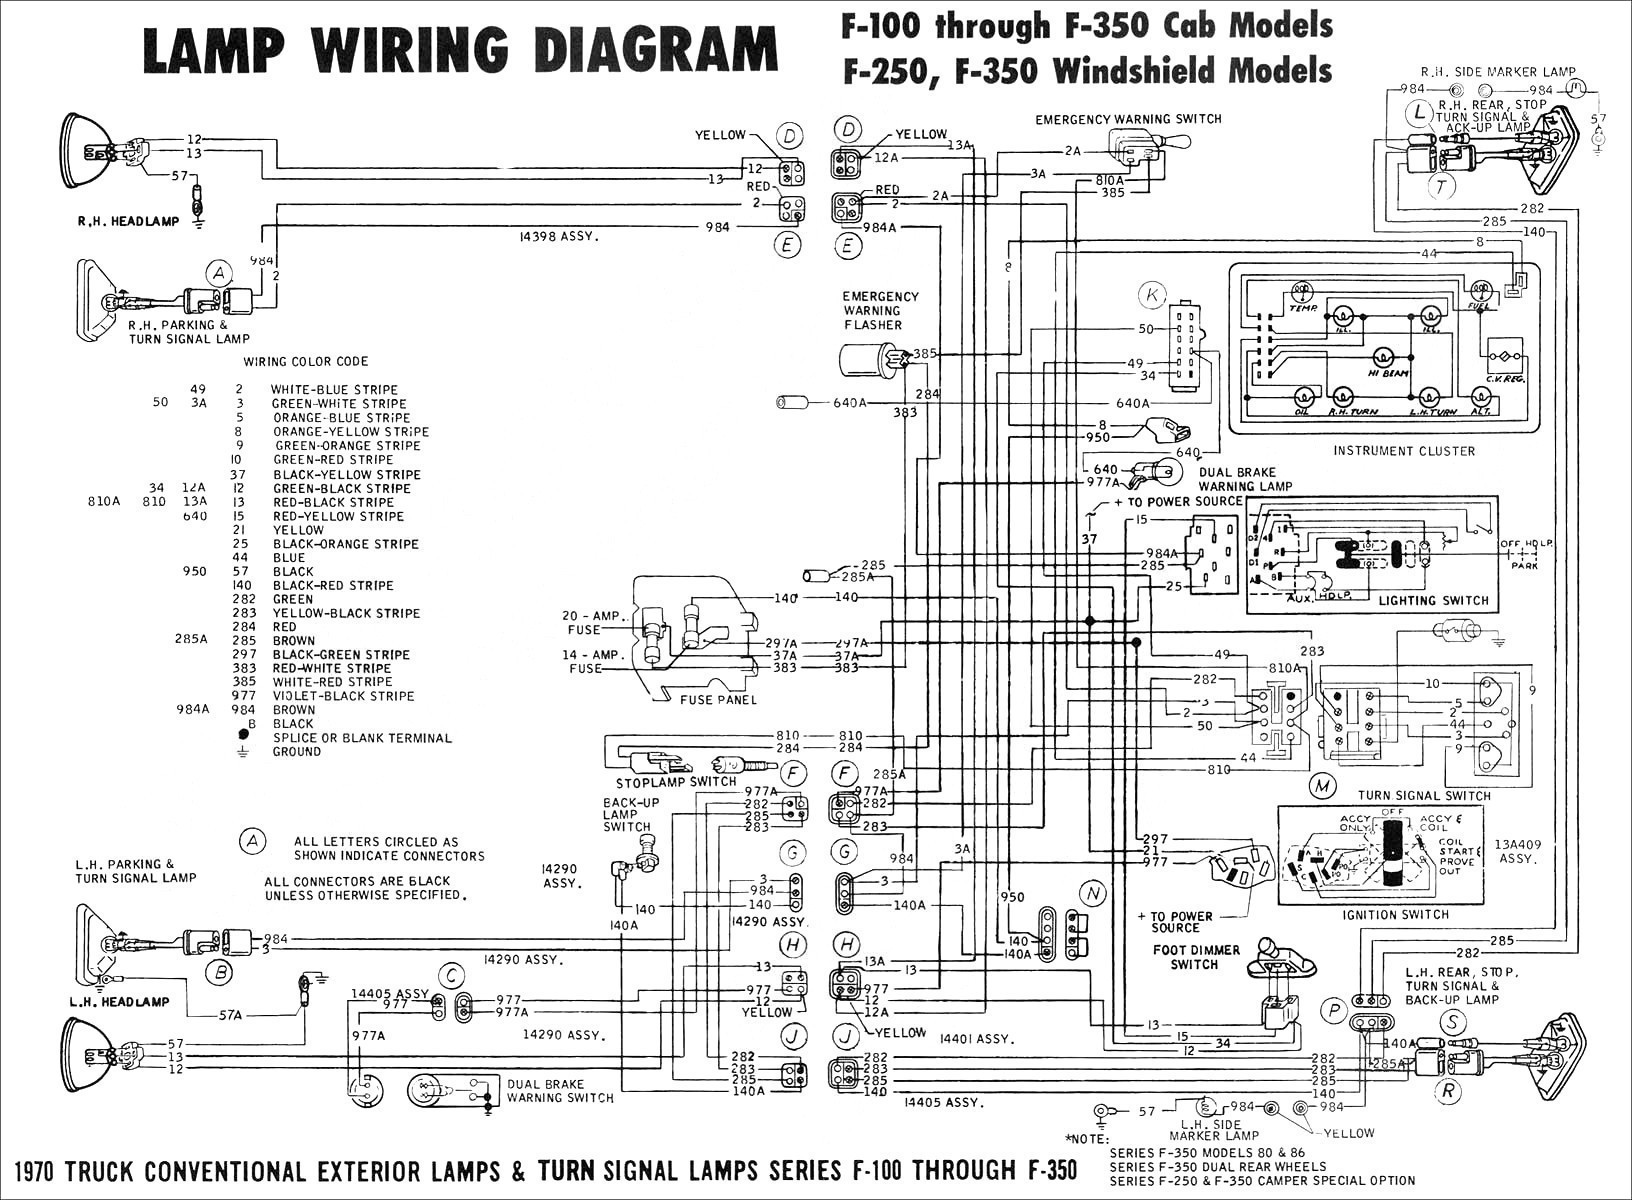 96 Dodge Intrepid Wiring Diagram